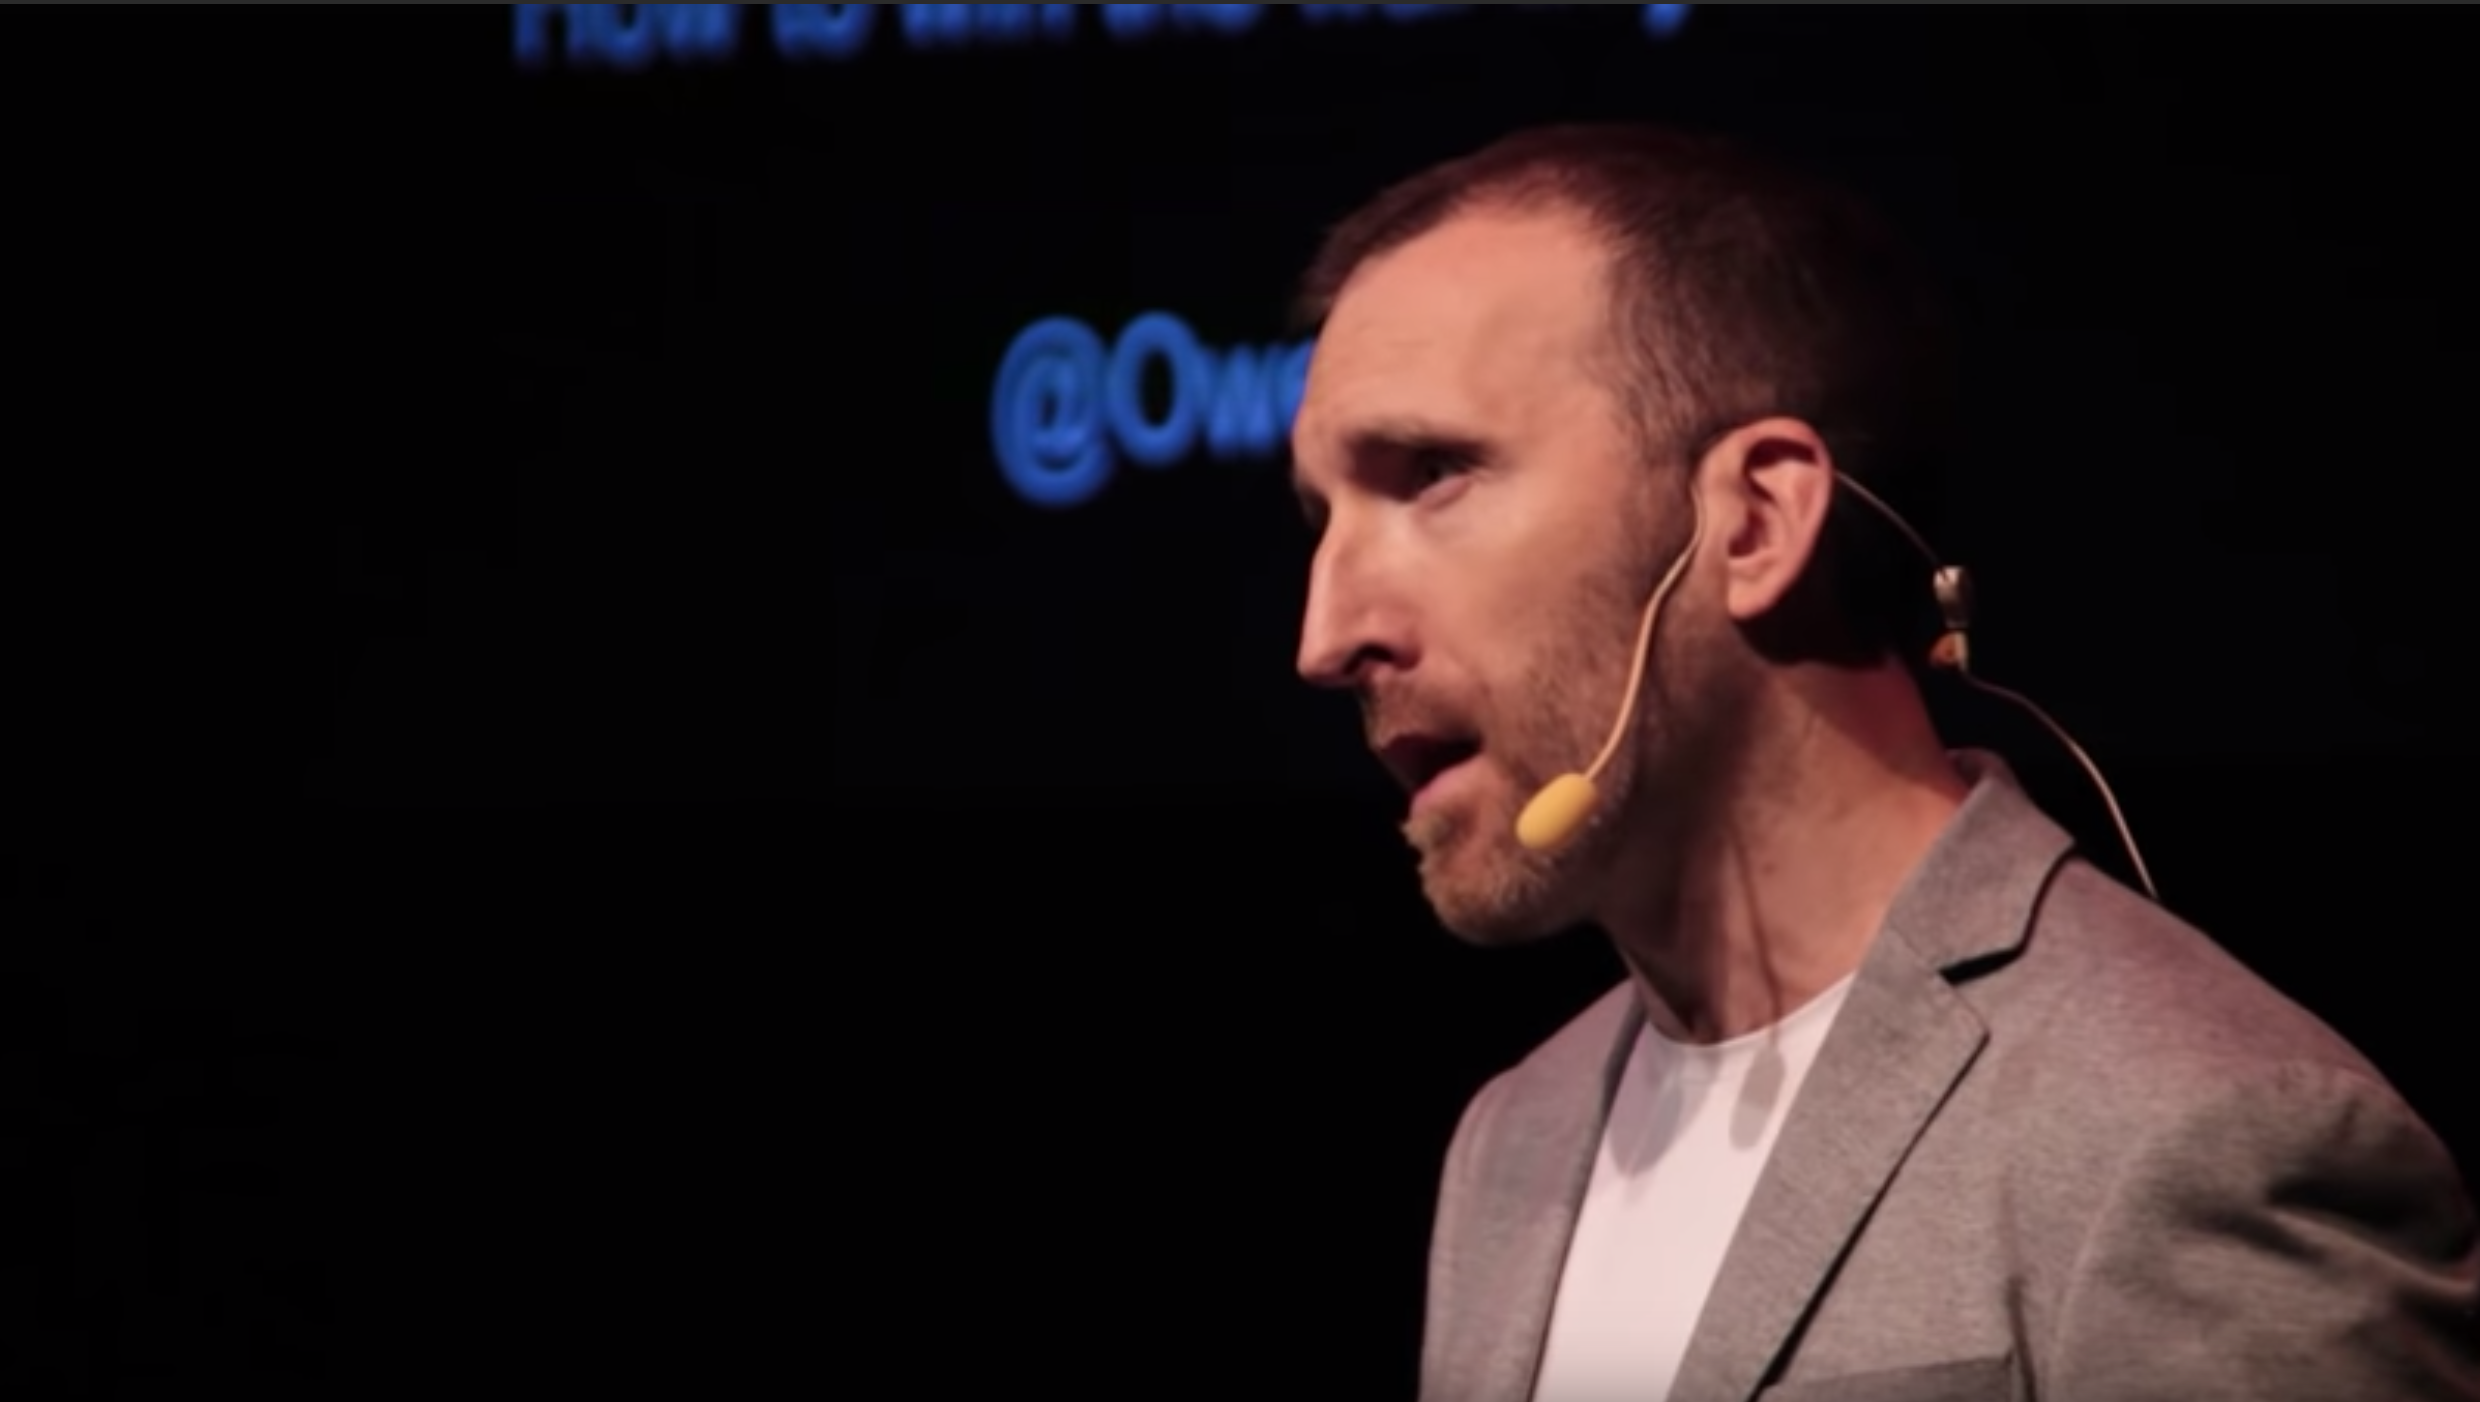 Owen Fitzpatrick Tedx Talk – How to win the war in your head